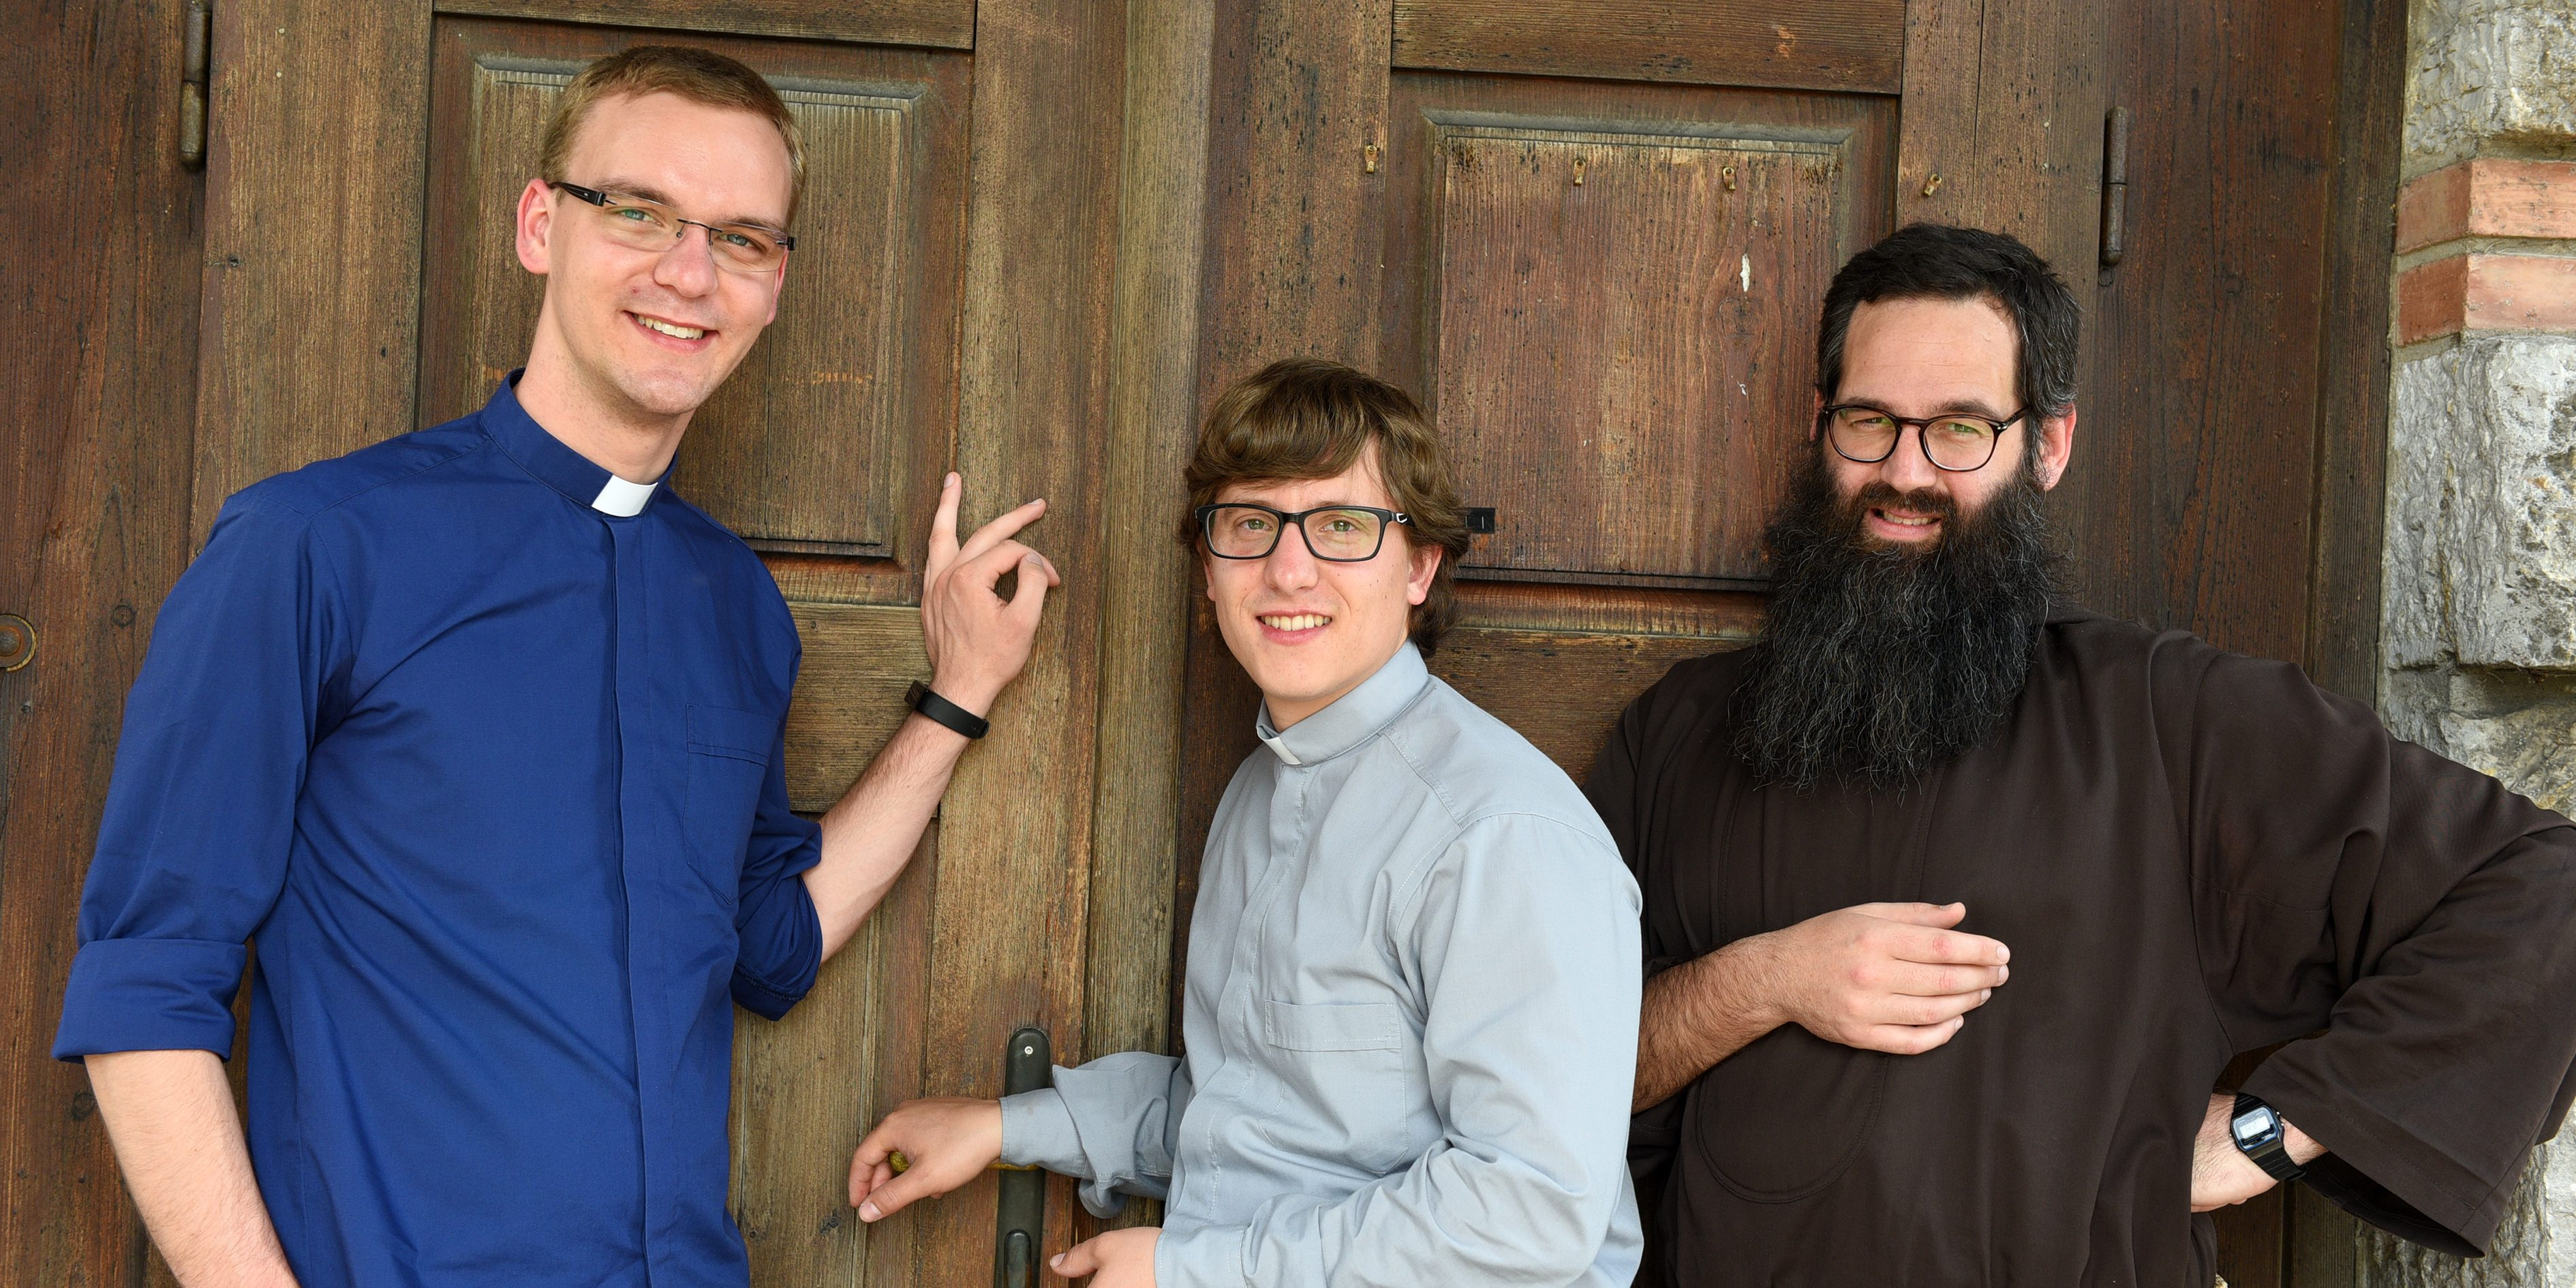 YOUNG PRIESTS